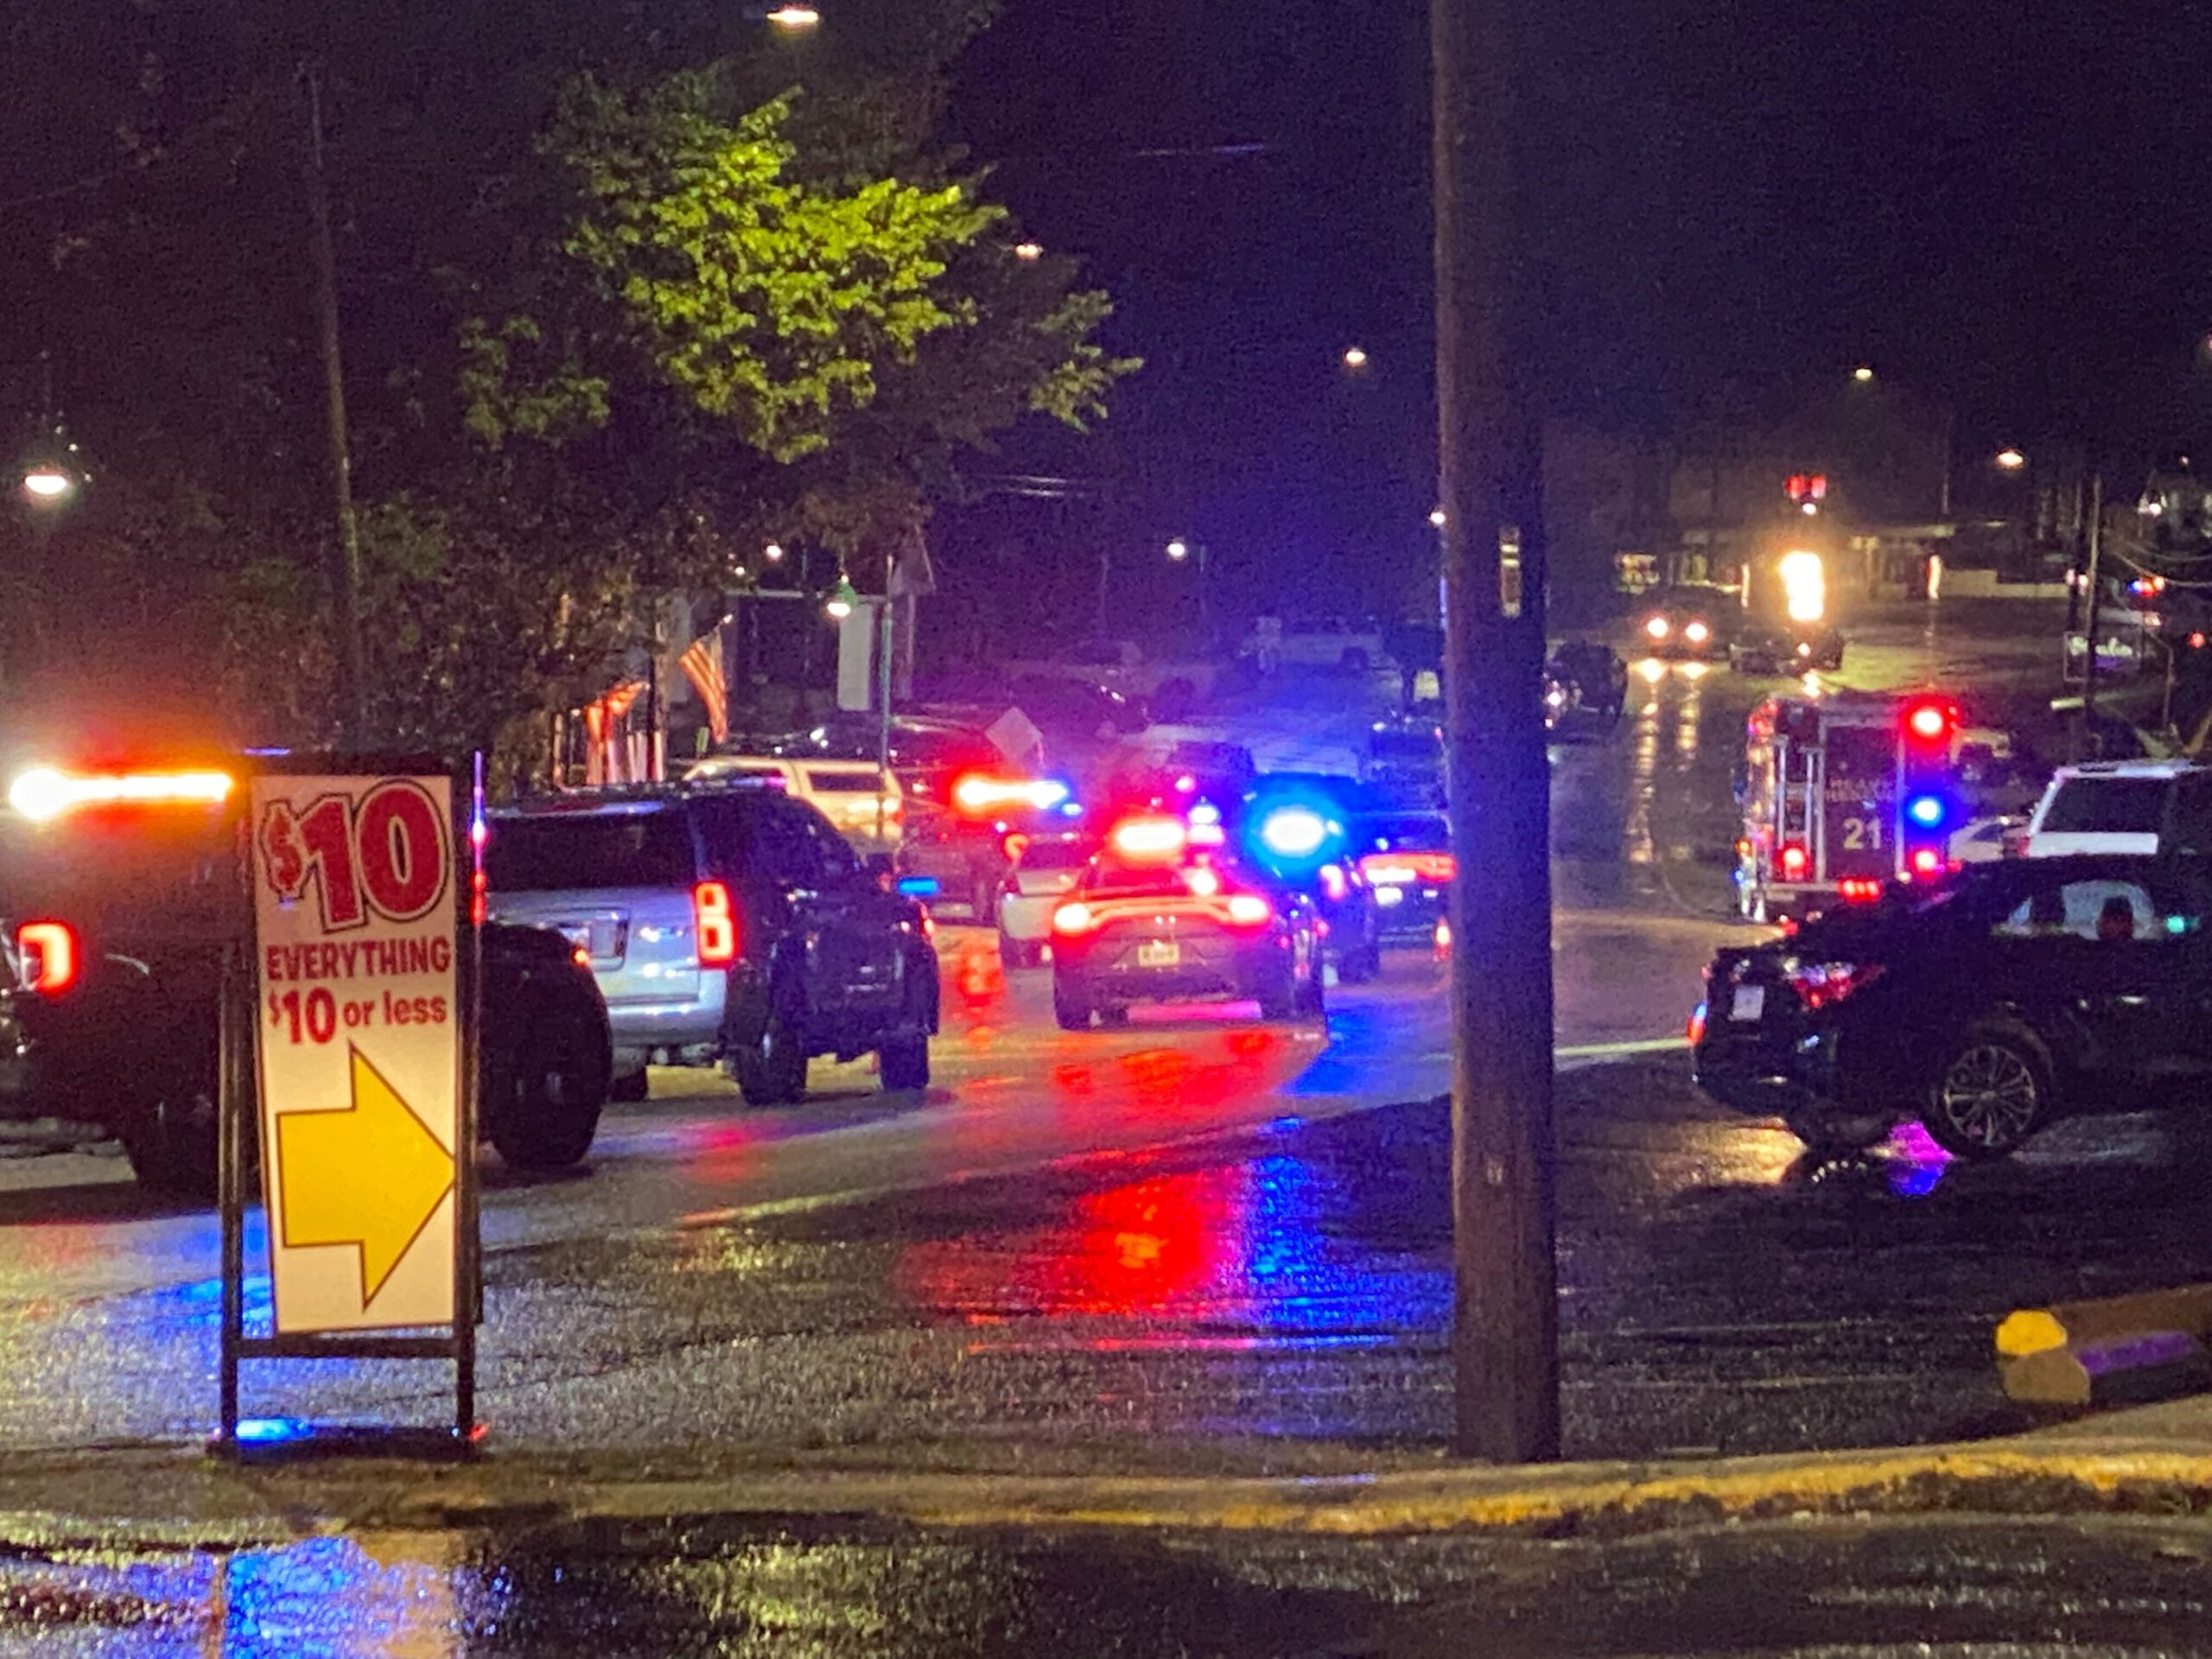 One person is dead and four injured after a shooting near a Lake of the Ozarks bar on July 15, 2021.